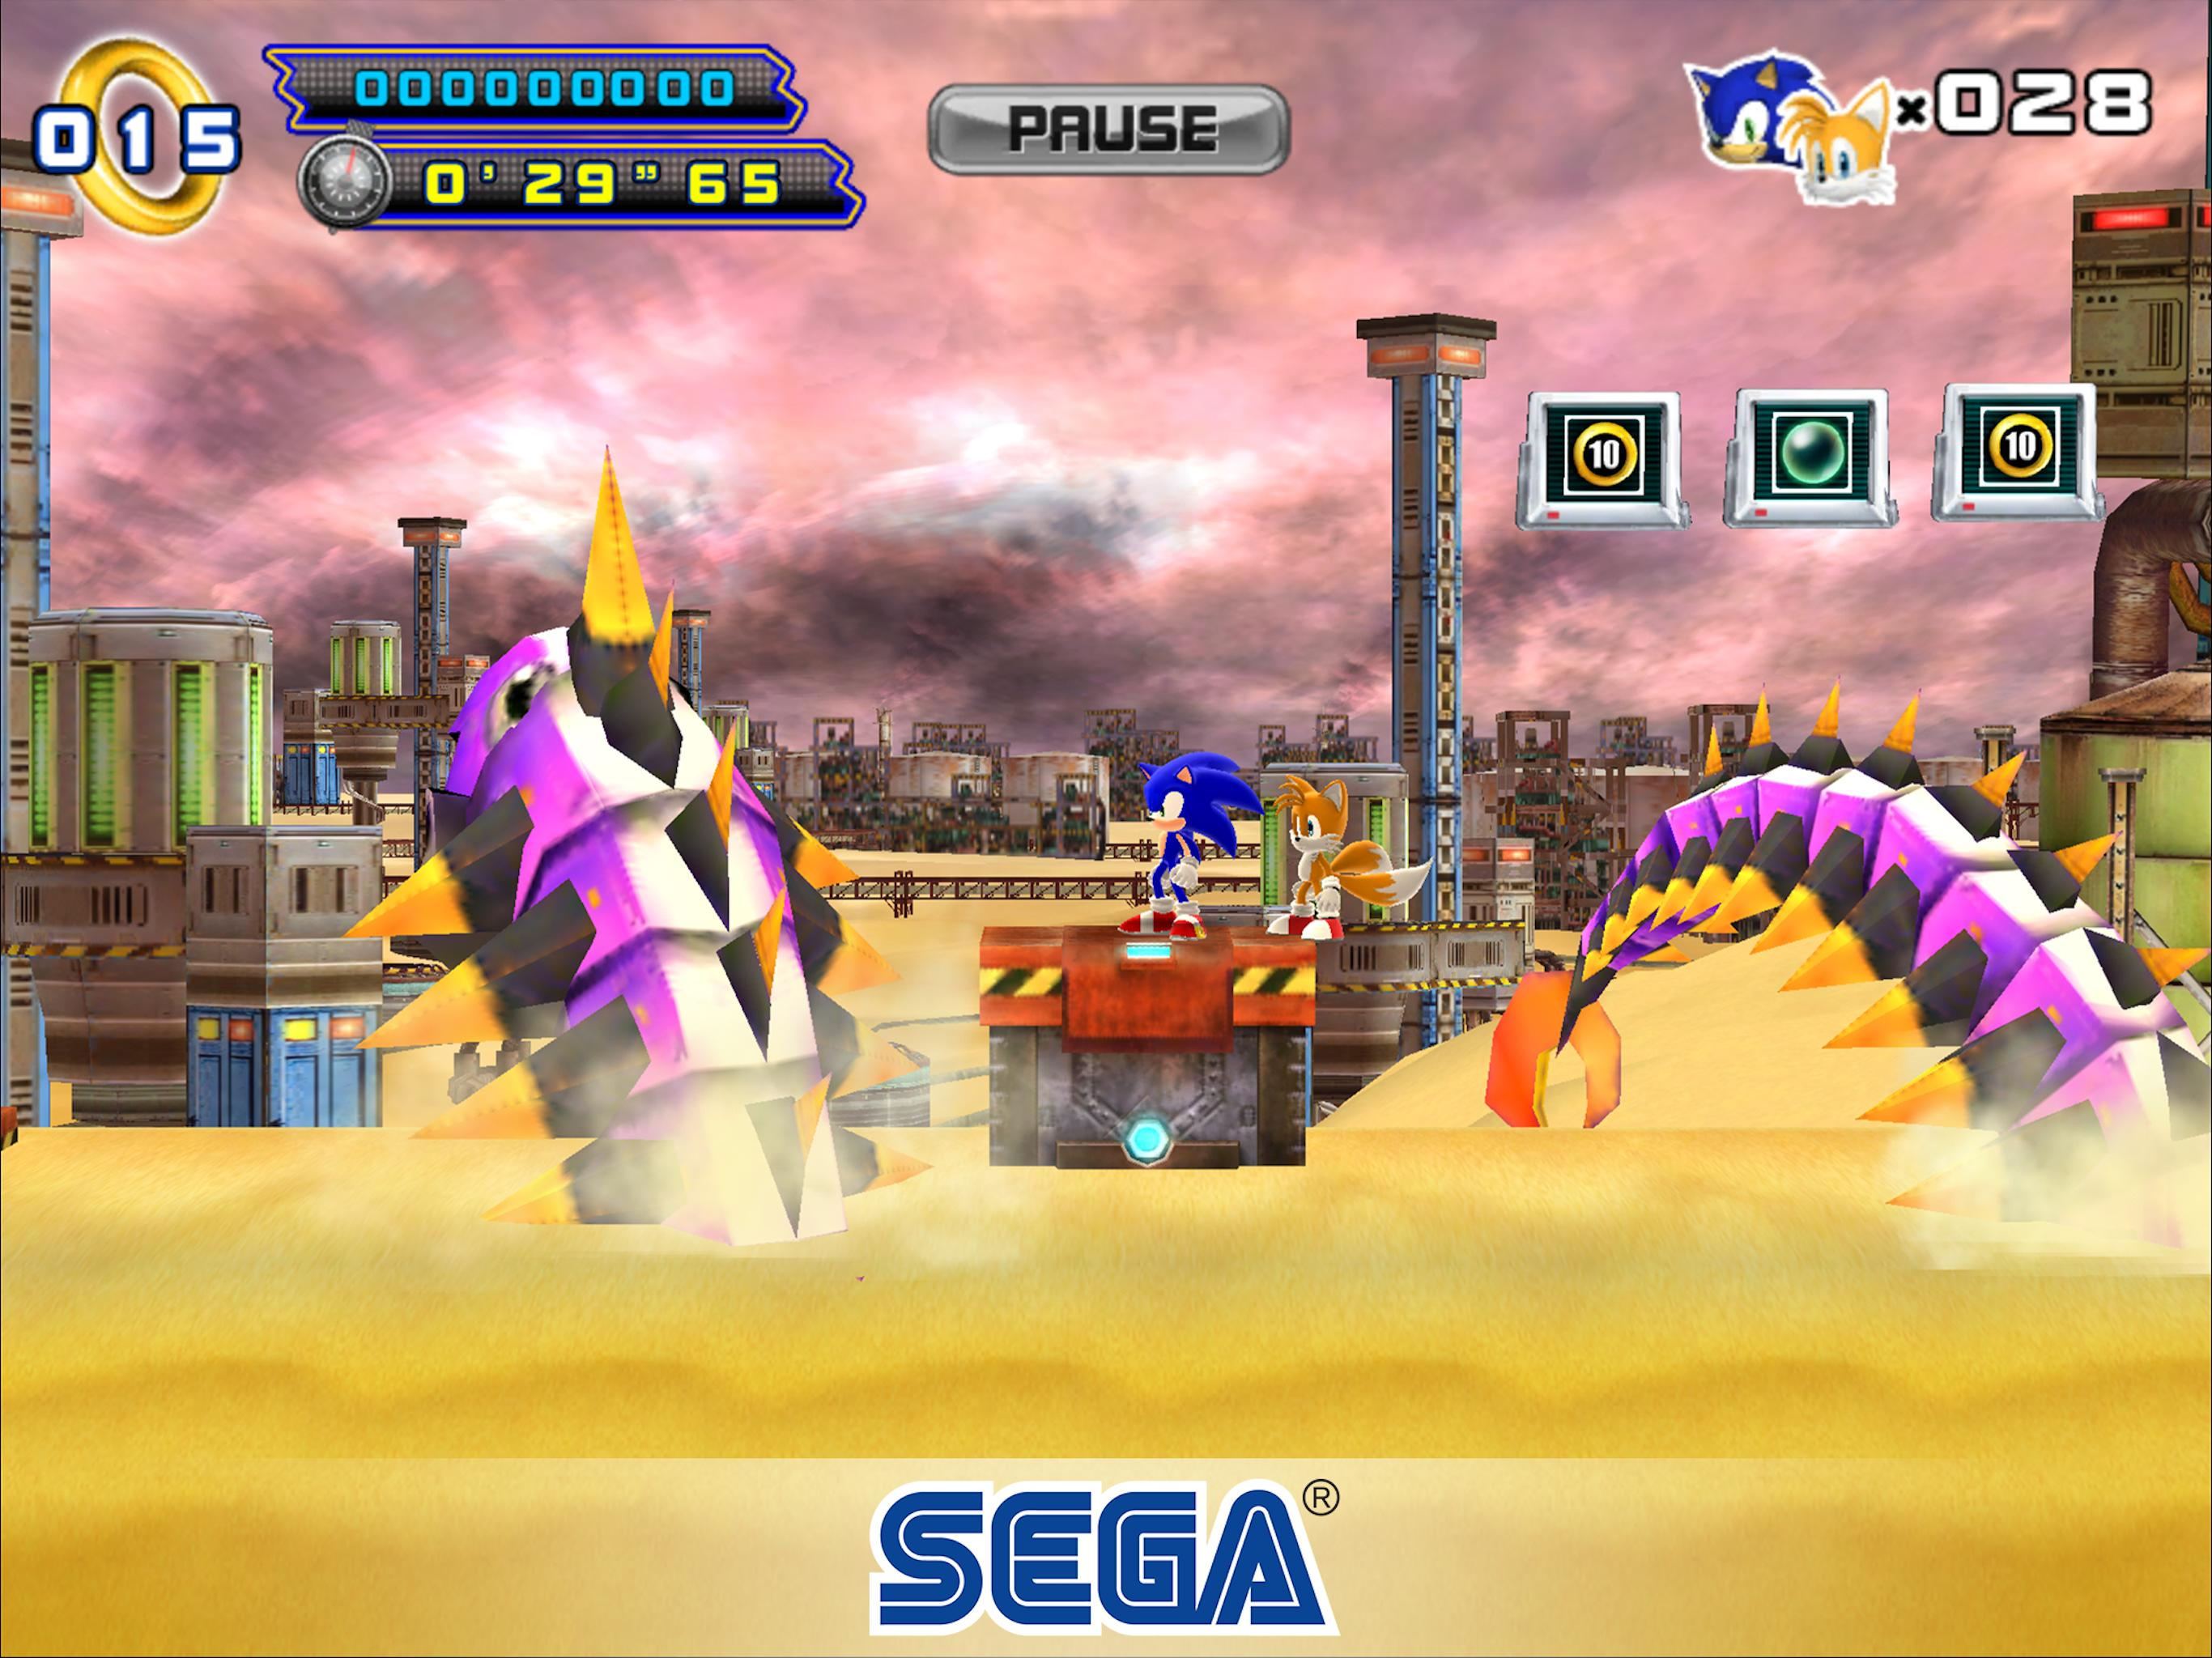 sonic the hedgehog 4 episode 2 android free download